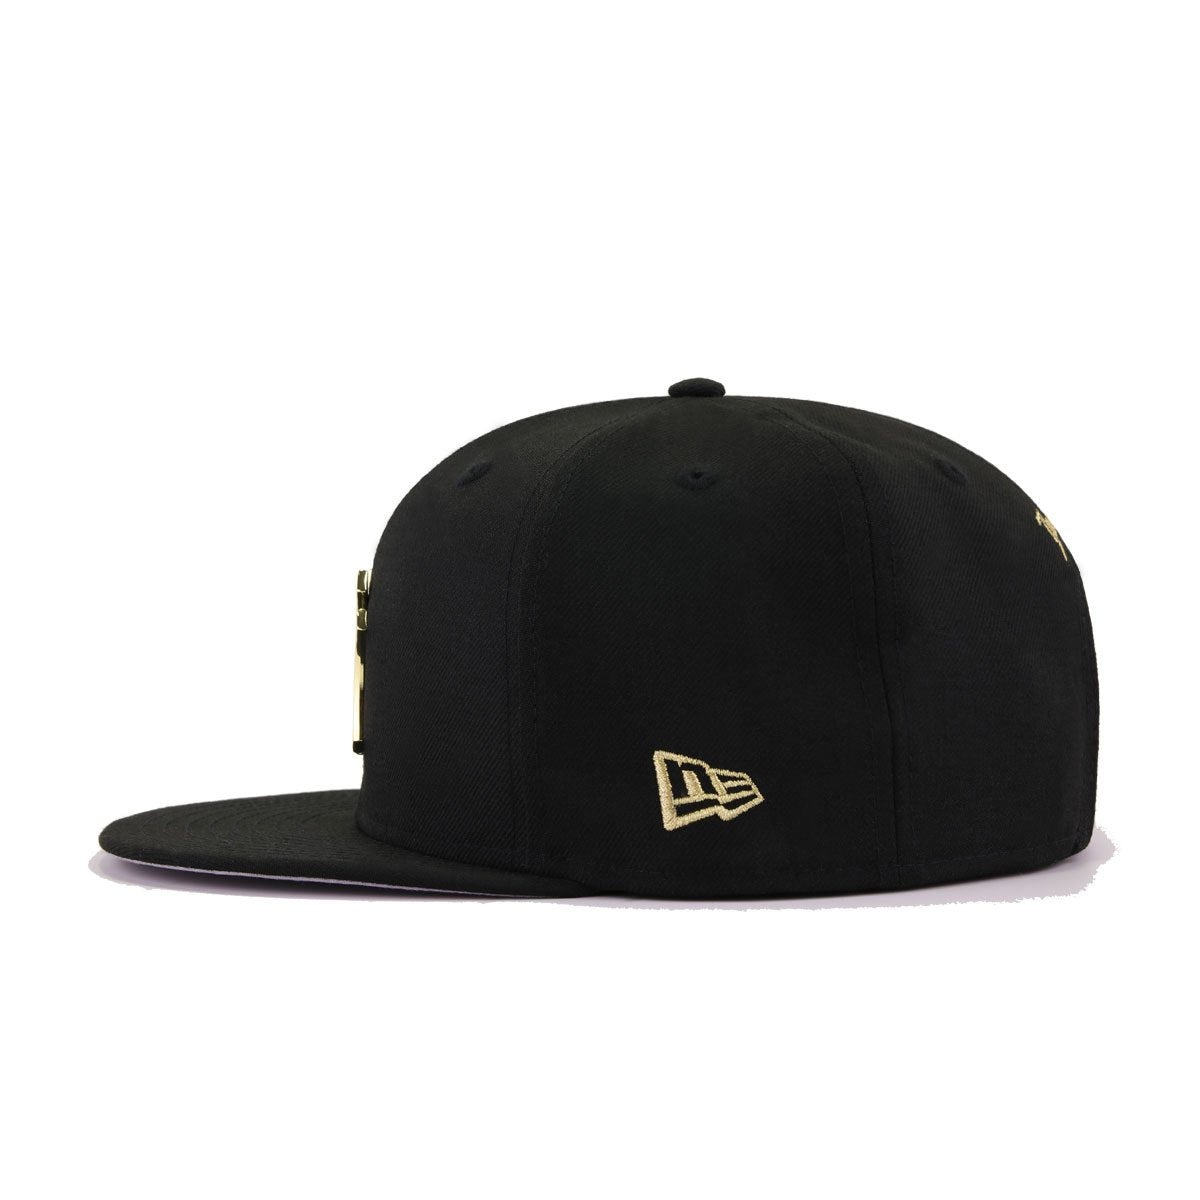 New York Yankees Black Gold Metal Badge New Era 9Fifty Snapback